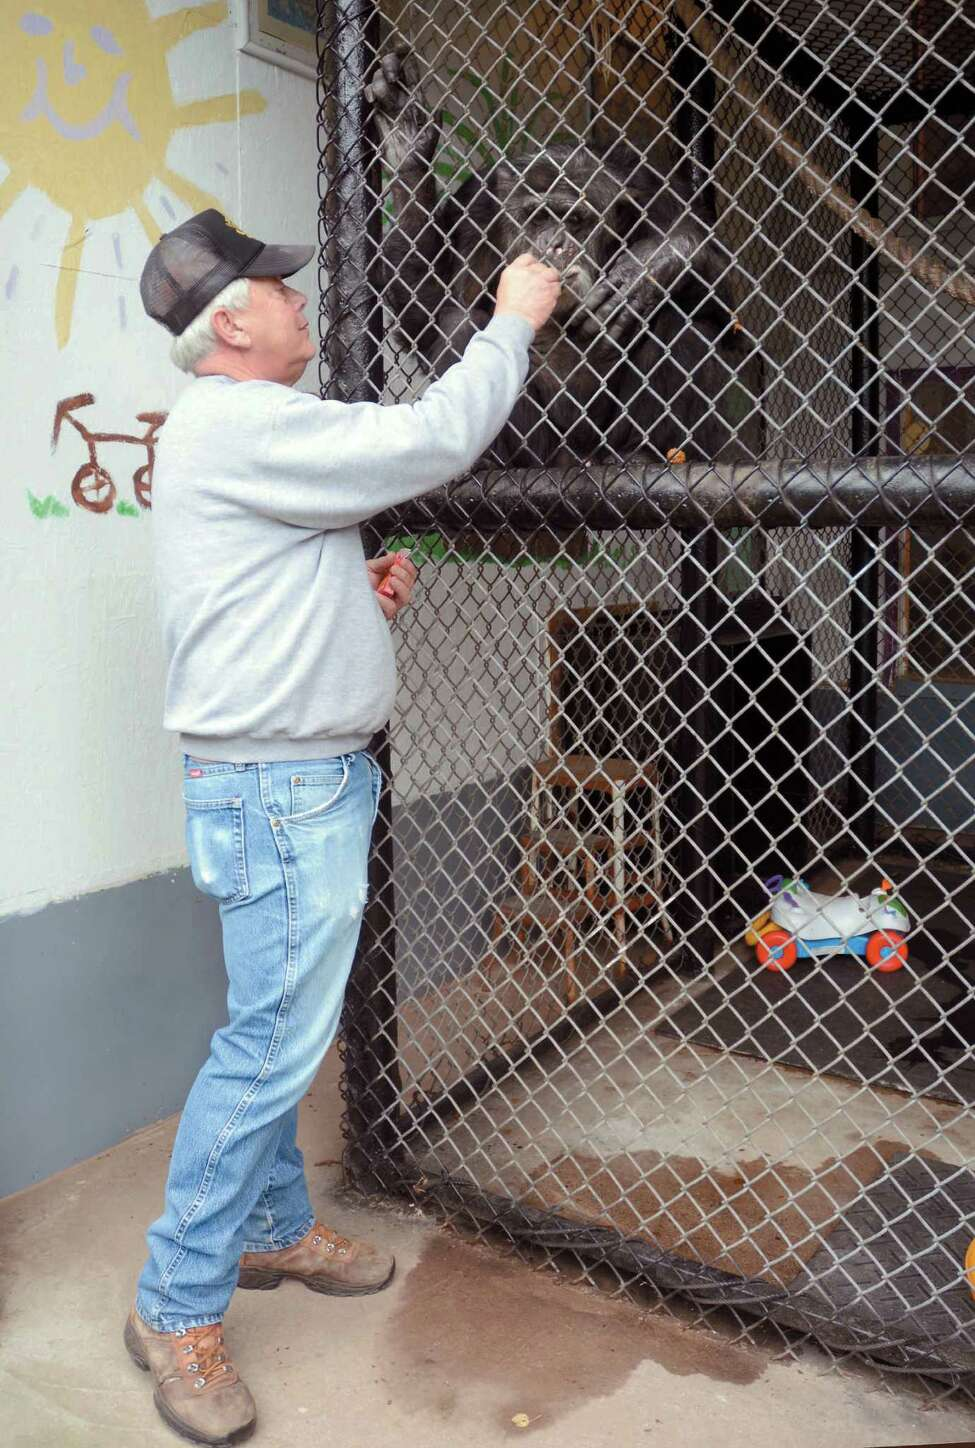 Patrick Lavery, owner, interacts with Tommy a chimpanzee on Oct. 29, 2014 in Gloversville, N.Y. A chimpanzee is not entitled to the rights of a human and does not have to be freed by its owner, a New York appeals court ruled Thursday, Dec. 4, 2014. The three-judge Appellate Division panel was unanimous in denying